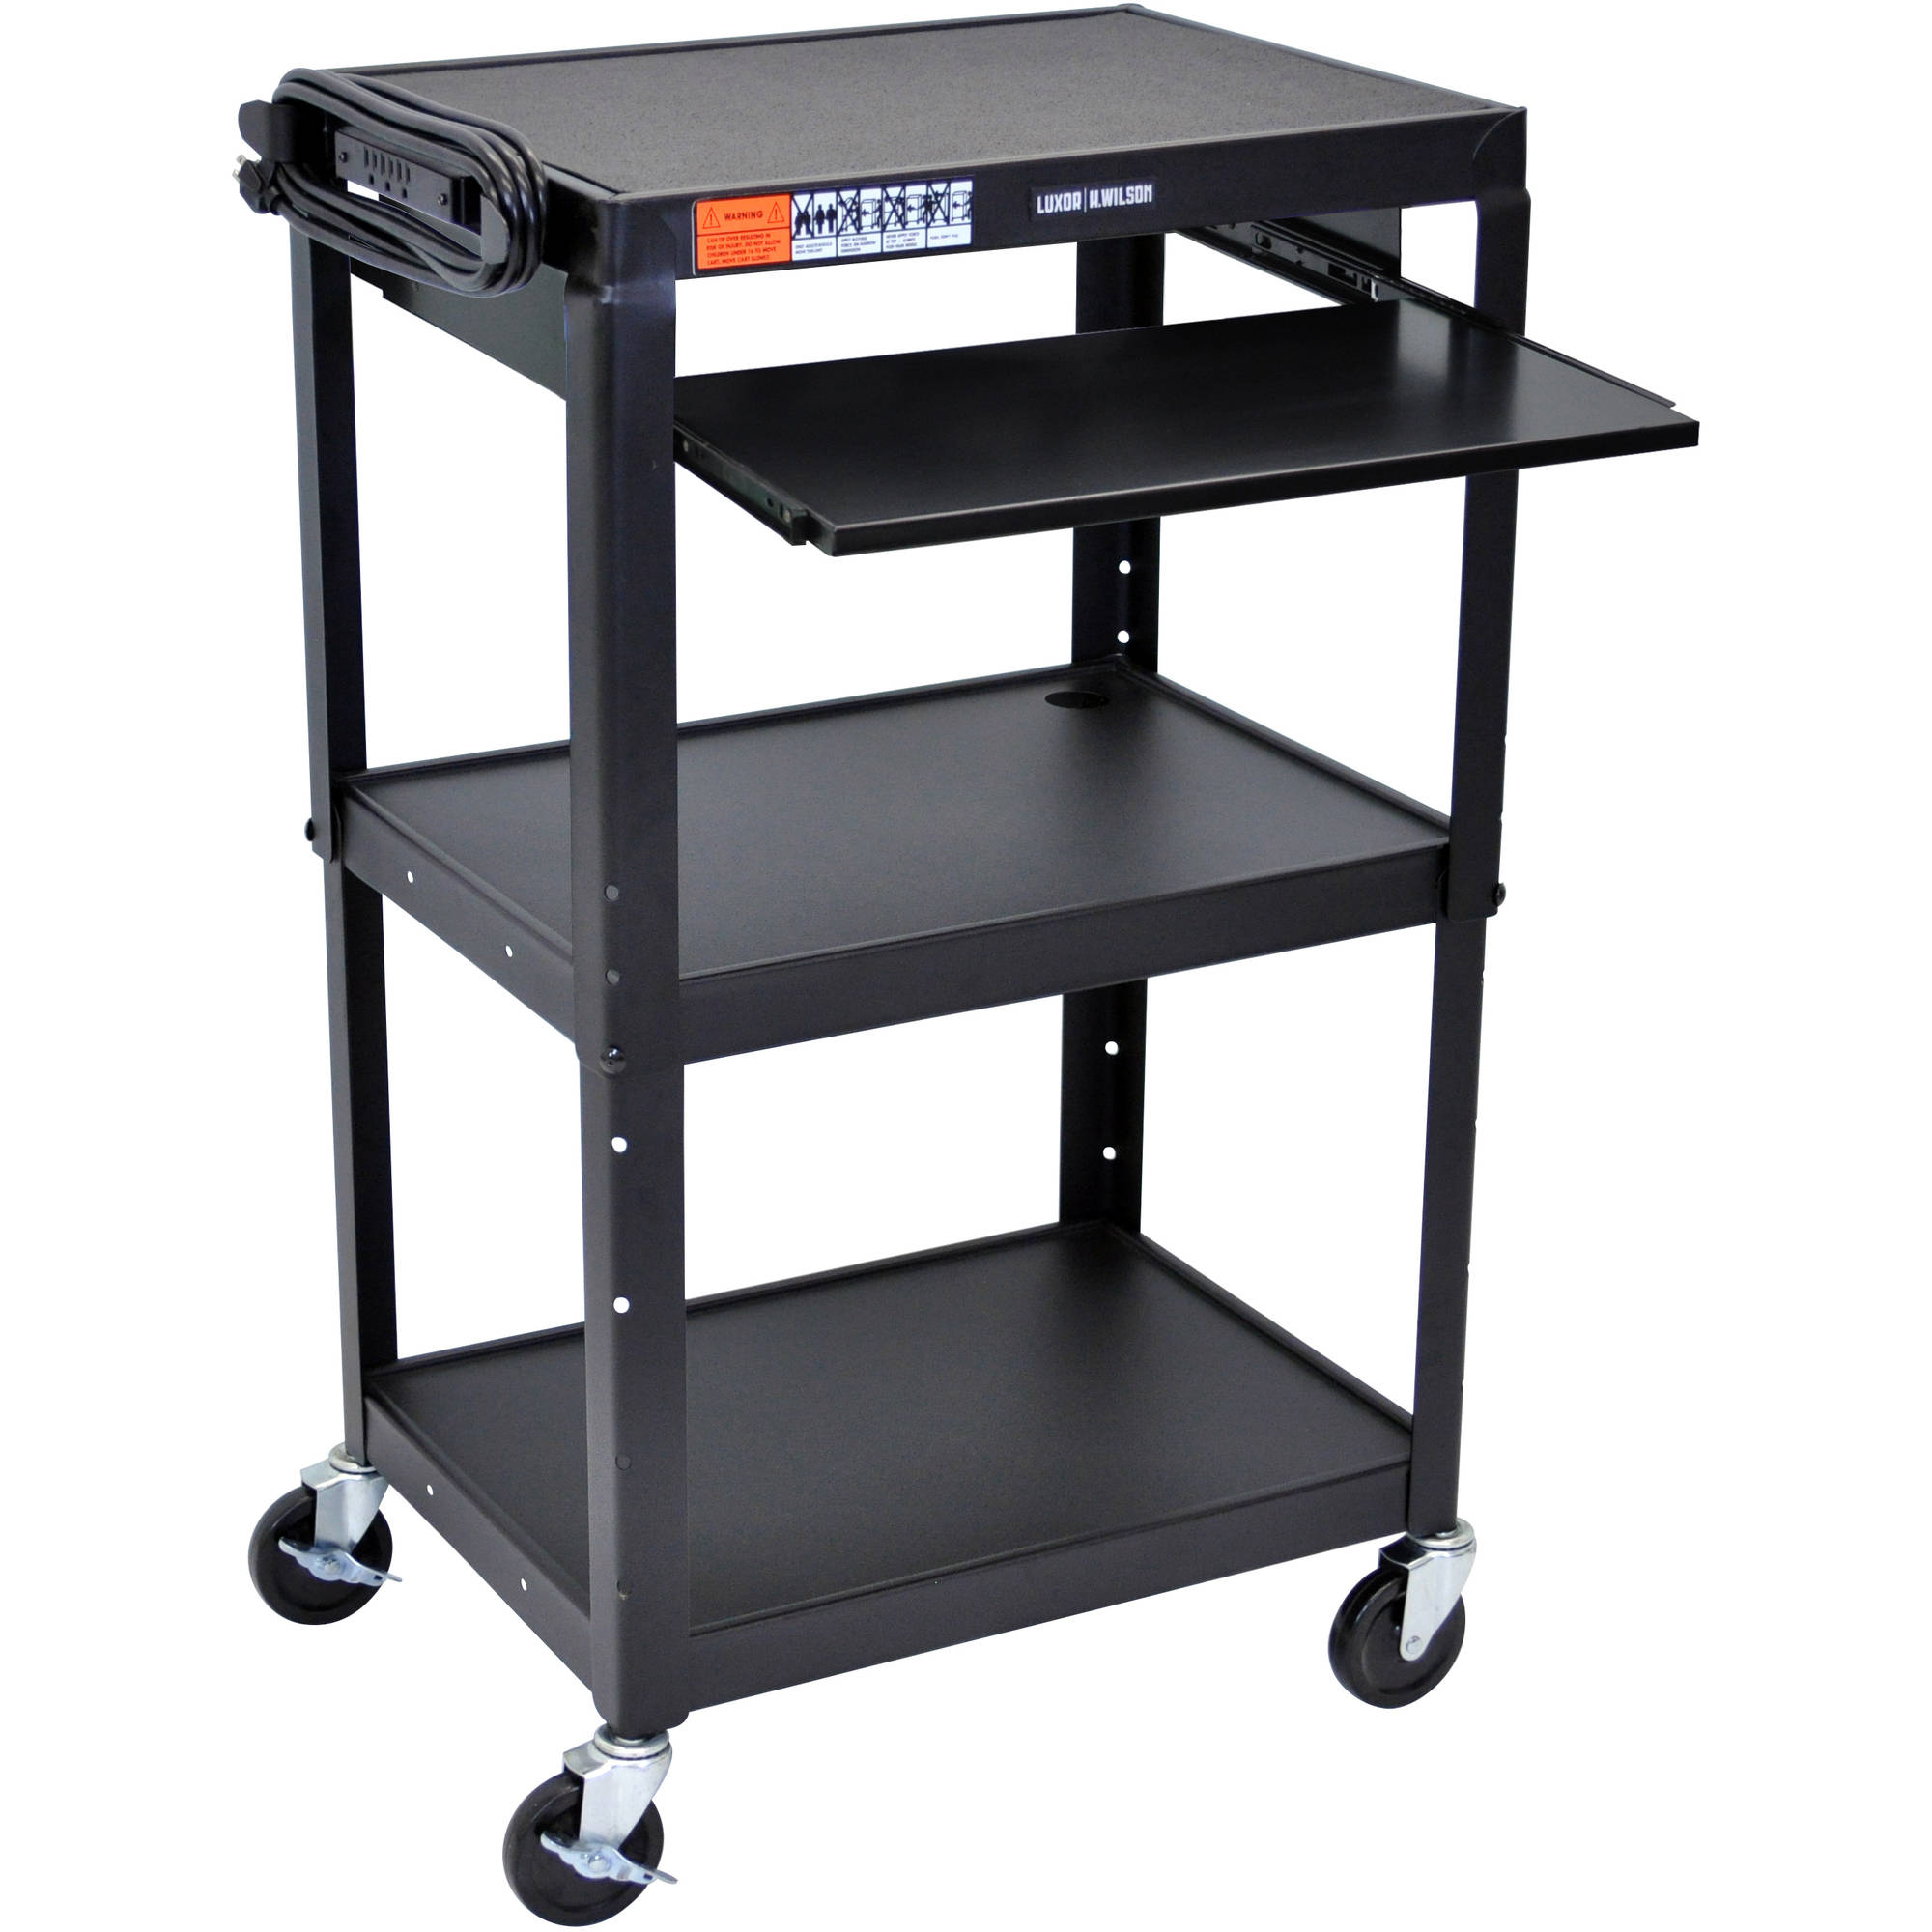 luxor steel adjustable height av cart with pullout keyboard tray walmartcom - Keyboard Tray